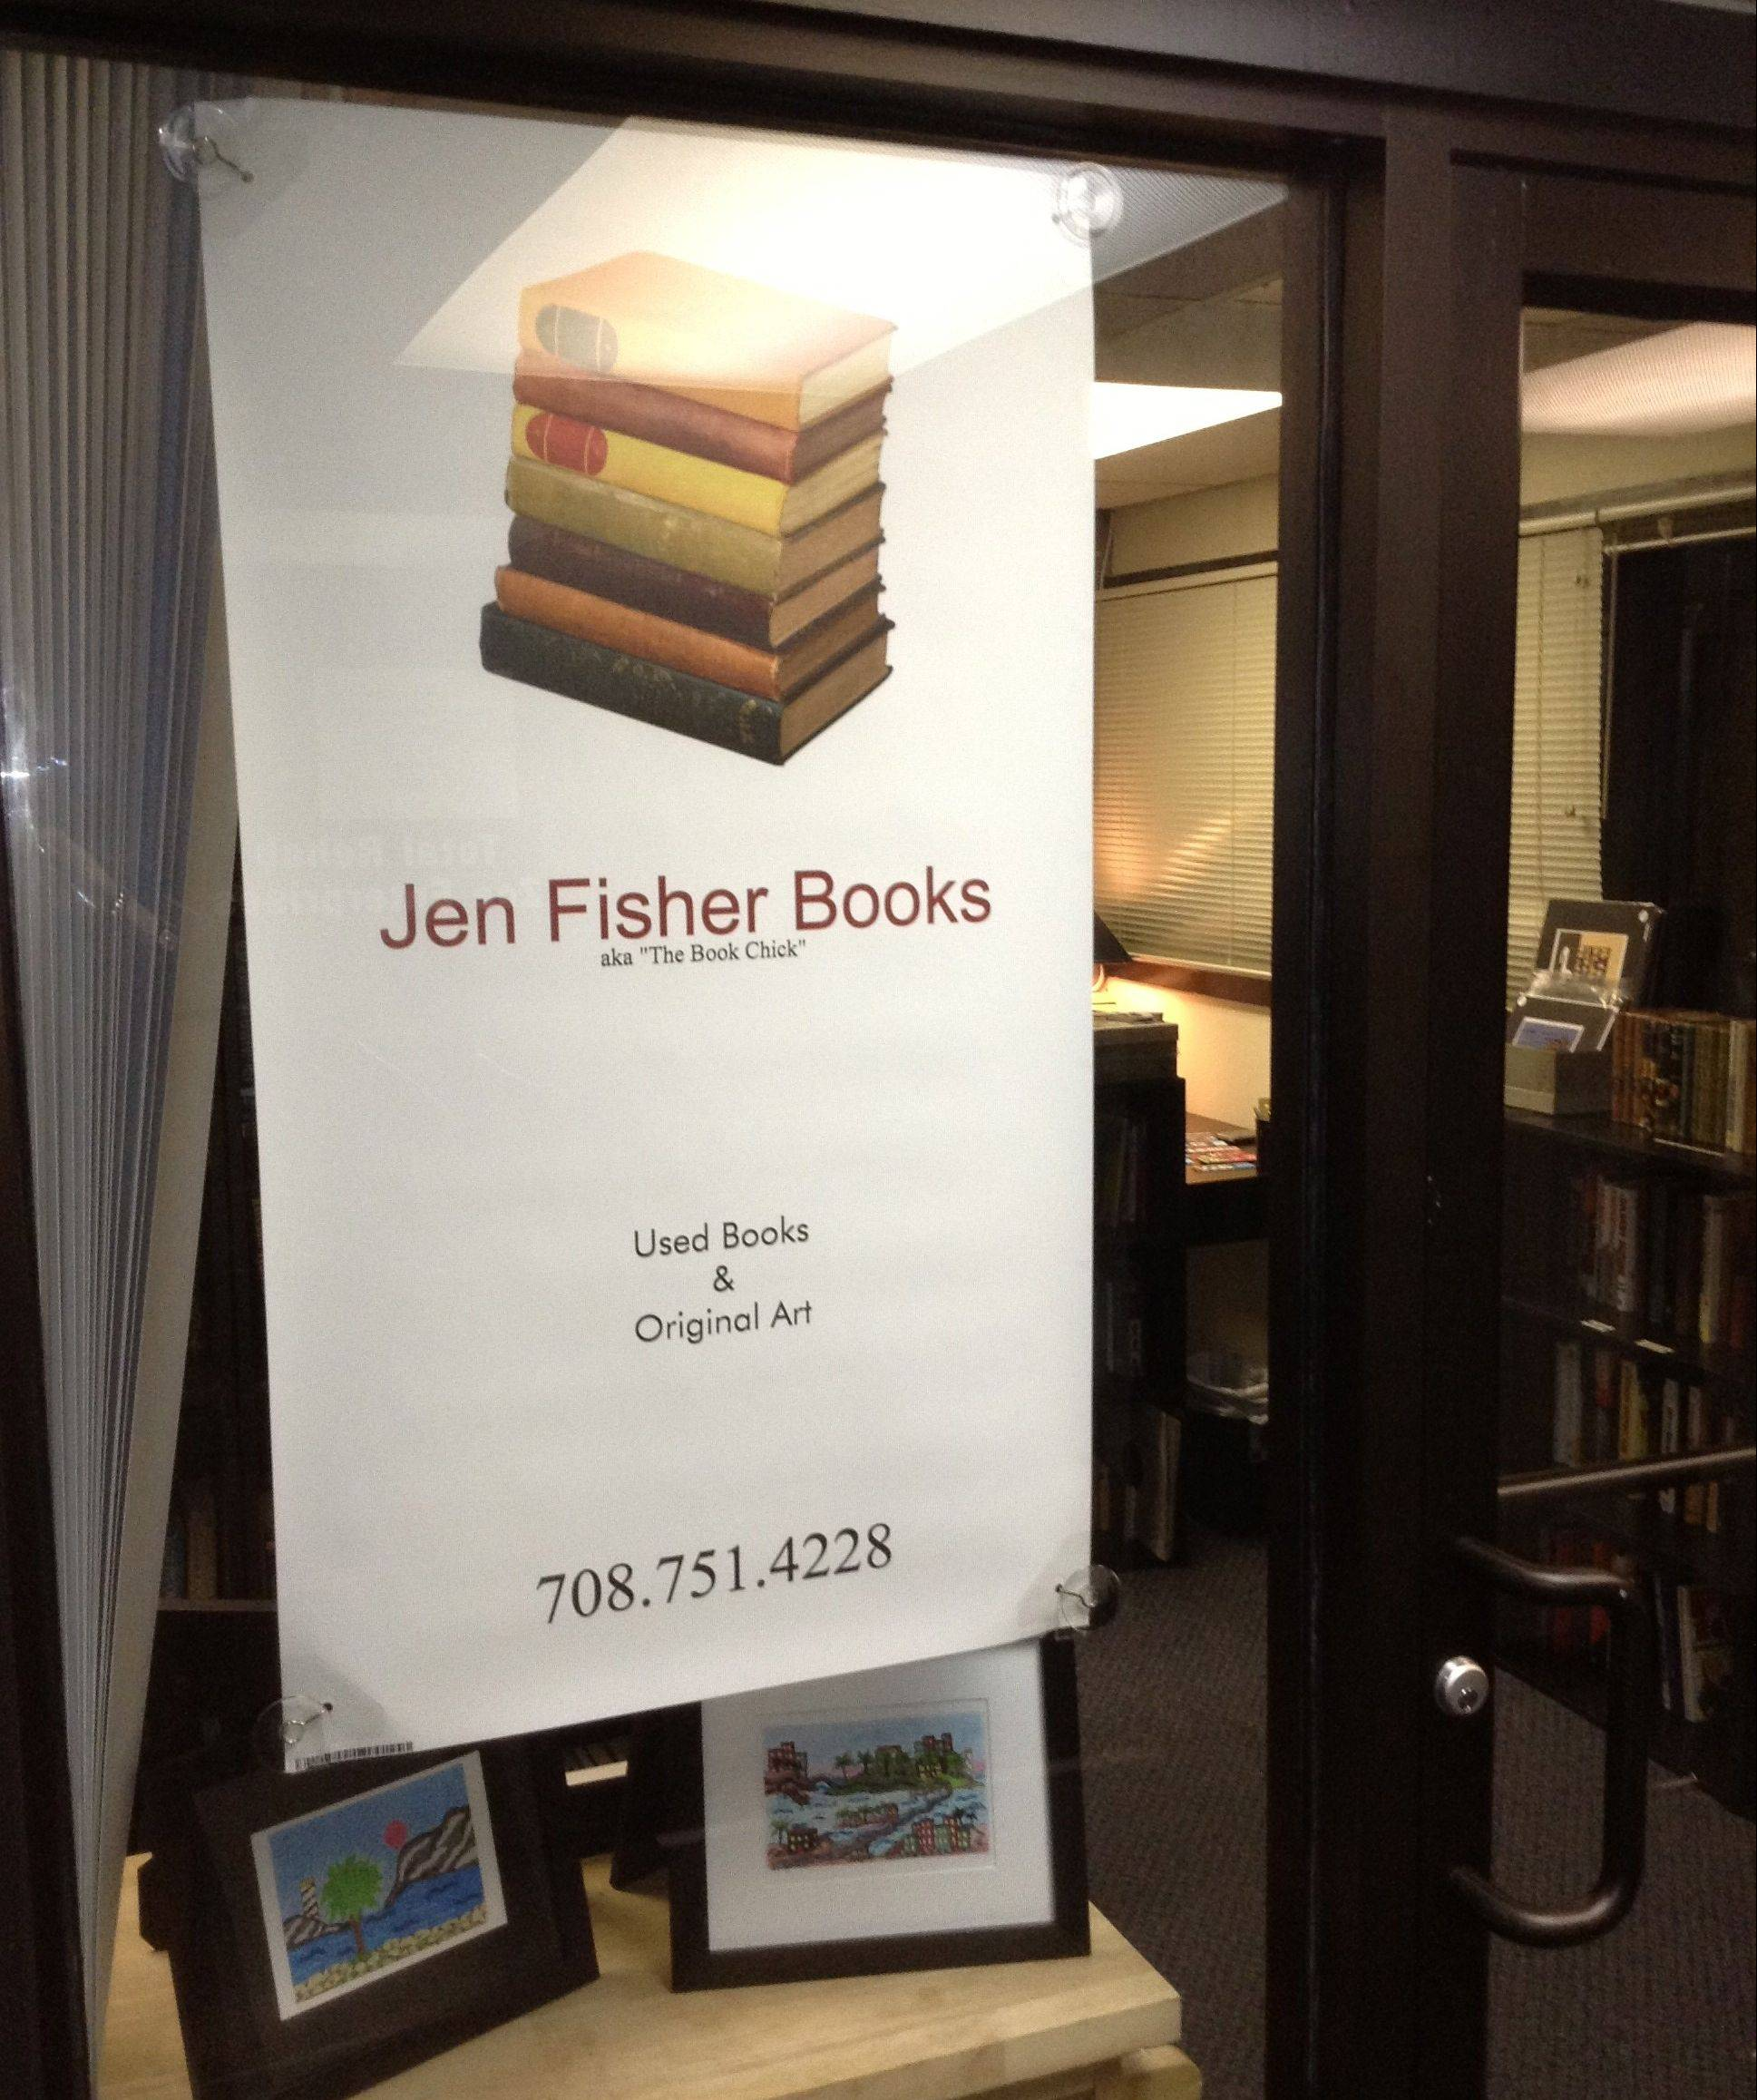 Jen Fisher Books recently opened at 100 E. Irving Park Road in Roselle.